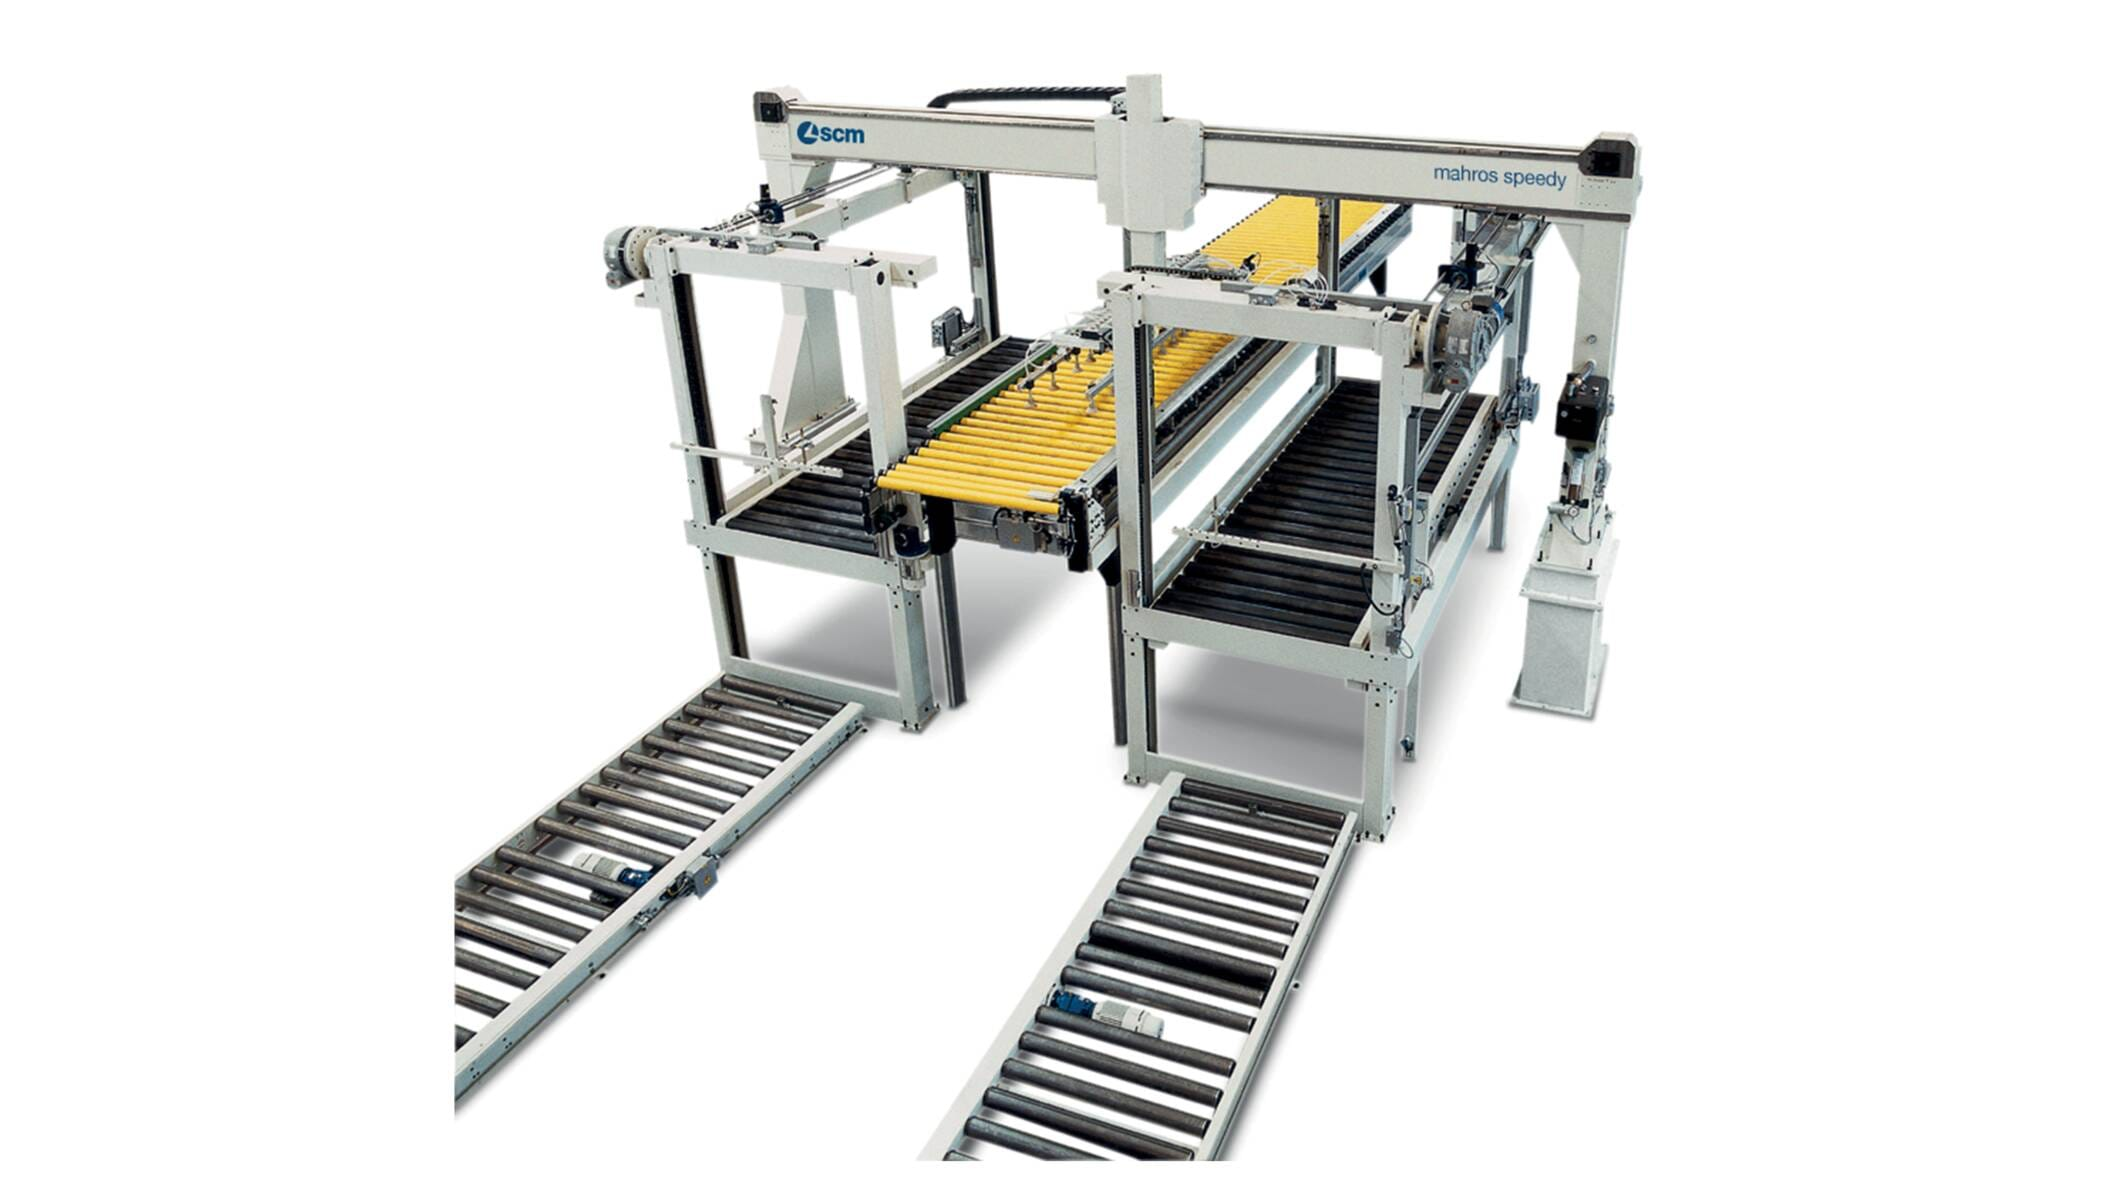 Automation systems - Machines for automation systems - mahros speedy